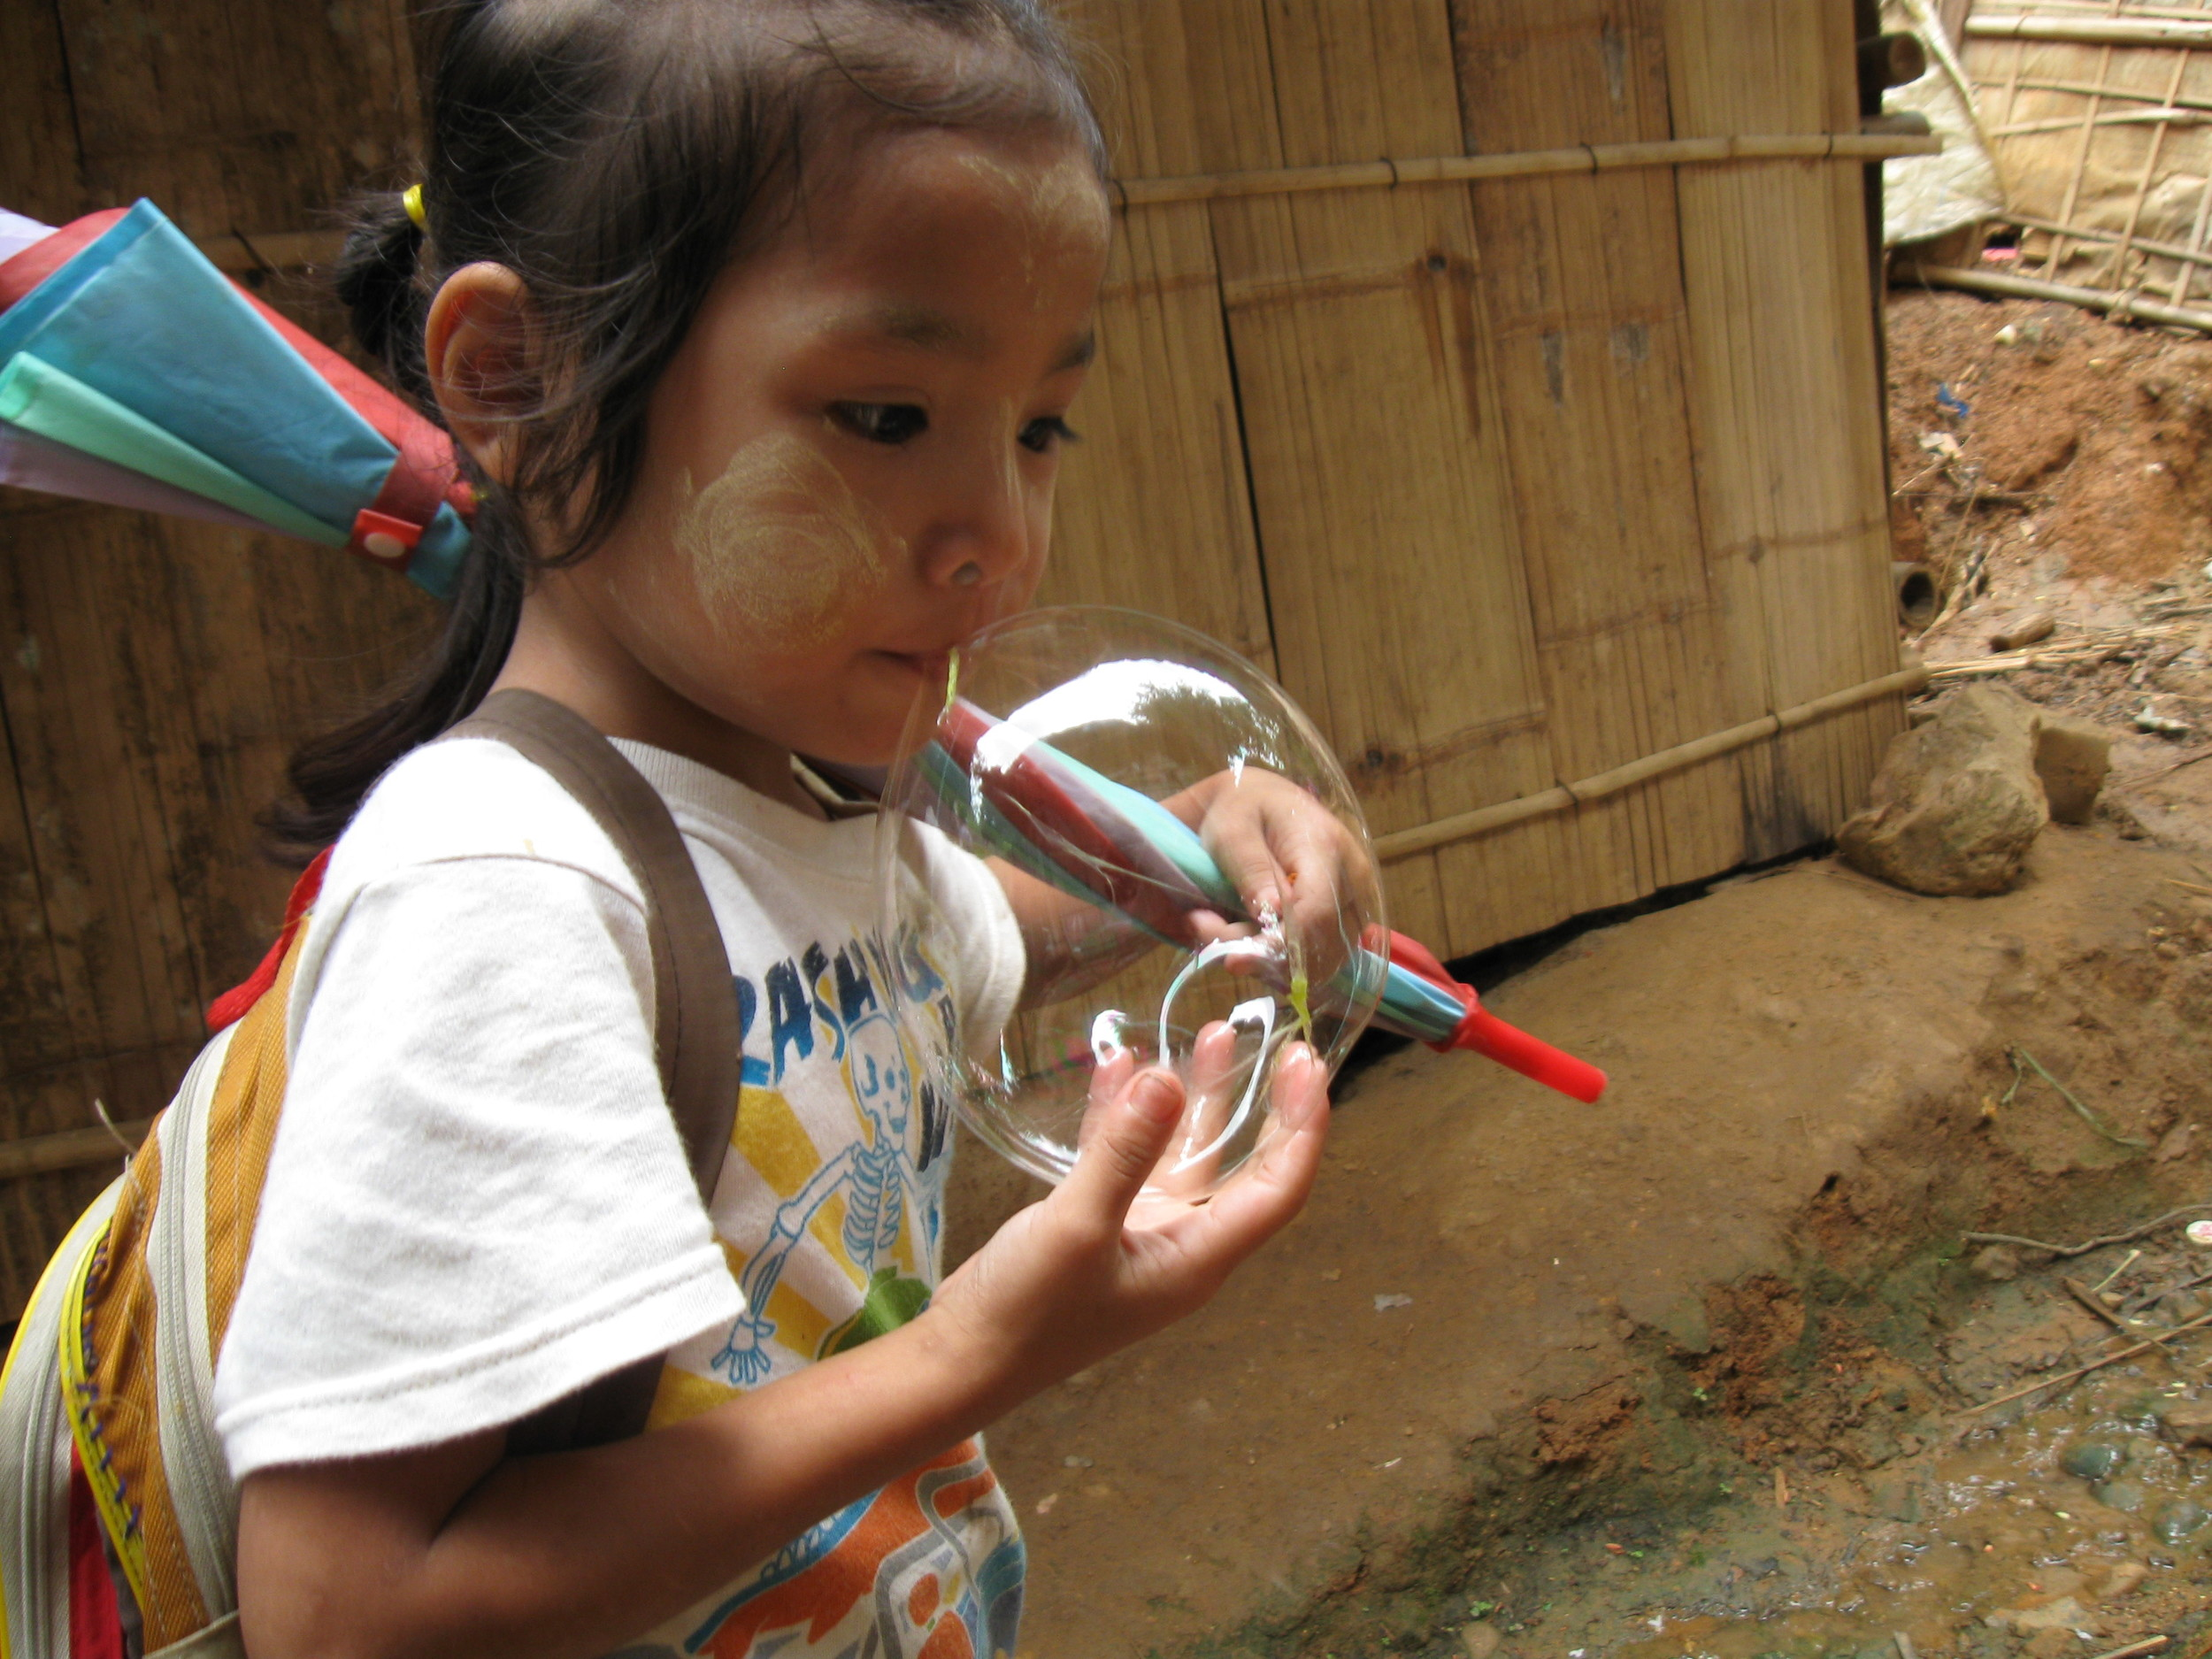 Snap this shot of a young girl blowing bubbles.Kids at the camp canfind fun in almost everything.